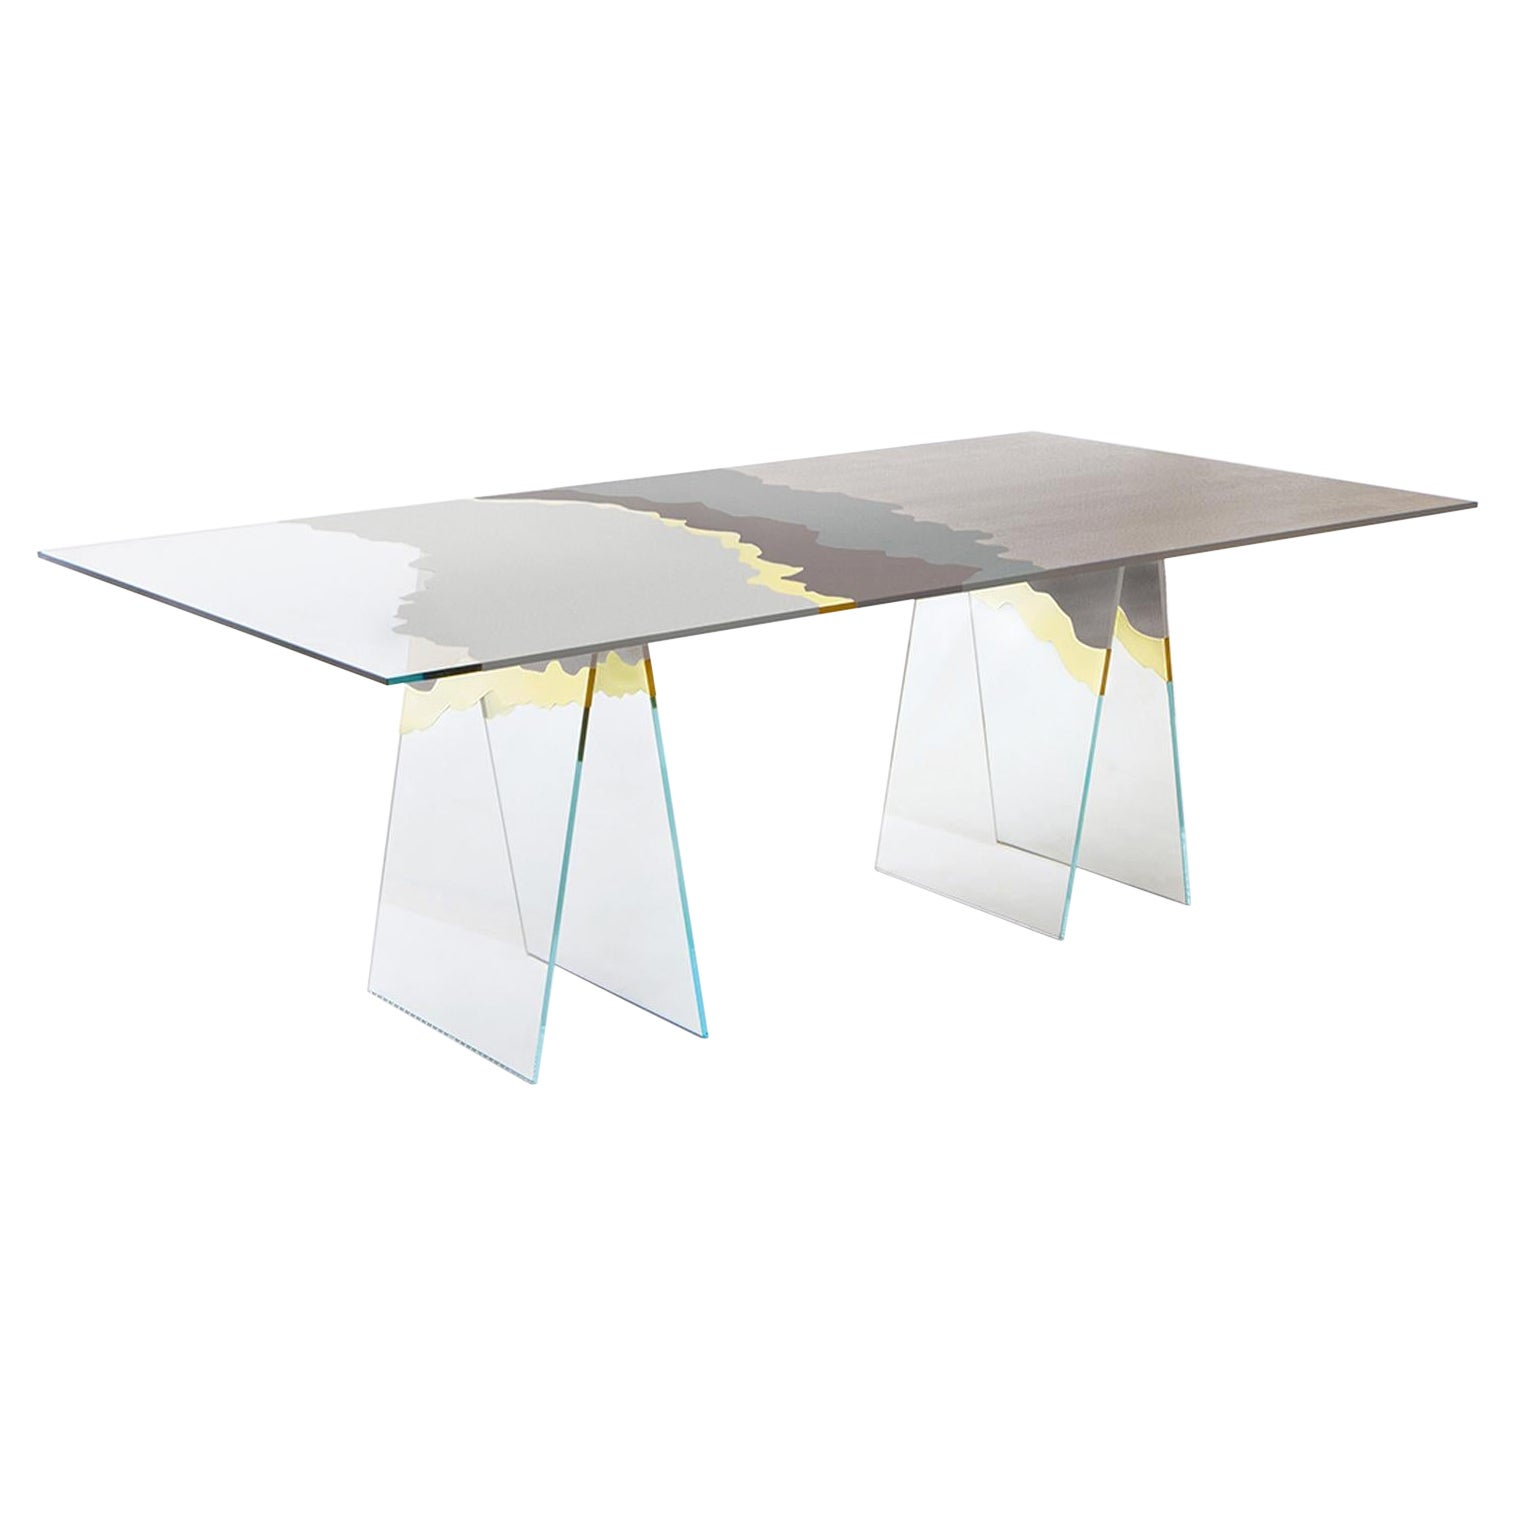 21st Century Table de Milàn Table in Ultra-White Glass and Grey Laminates